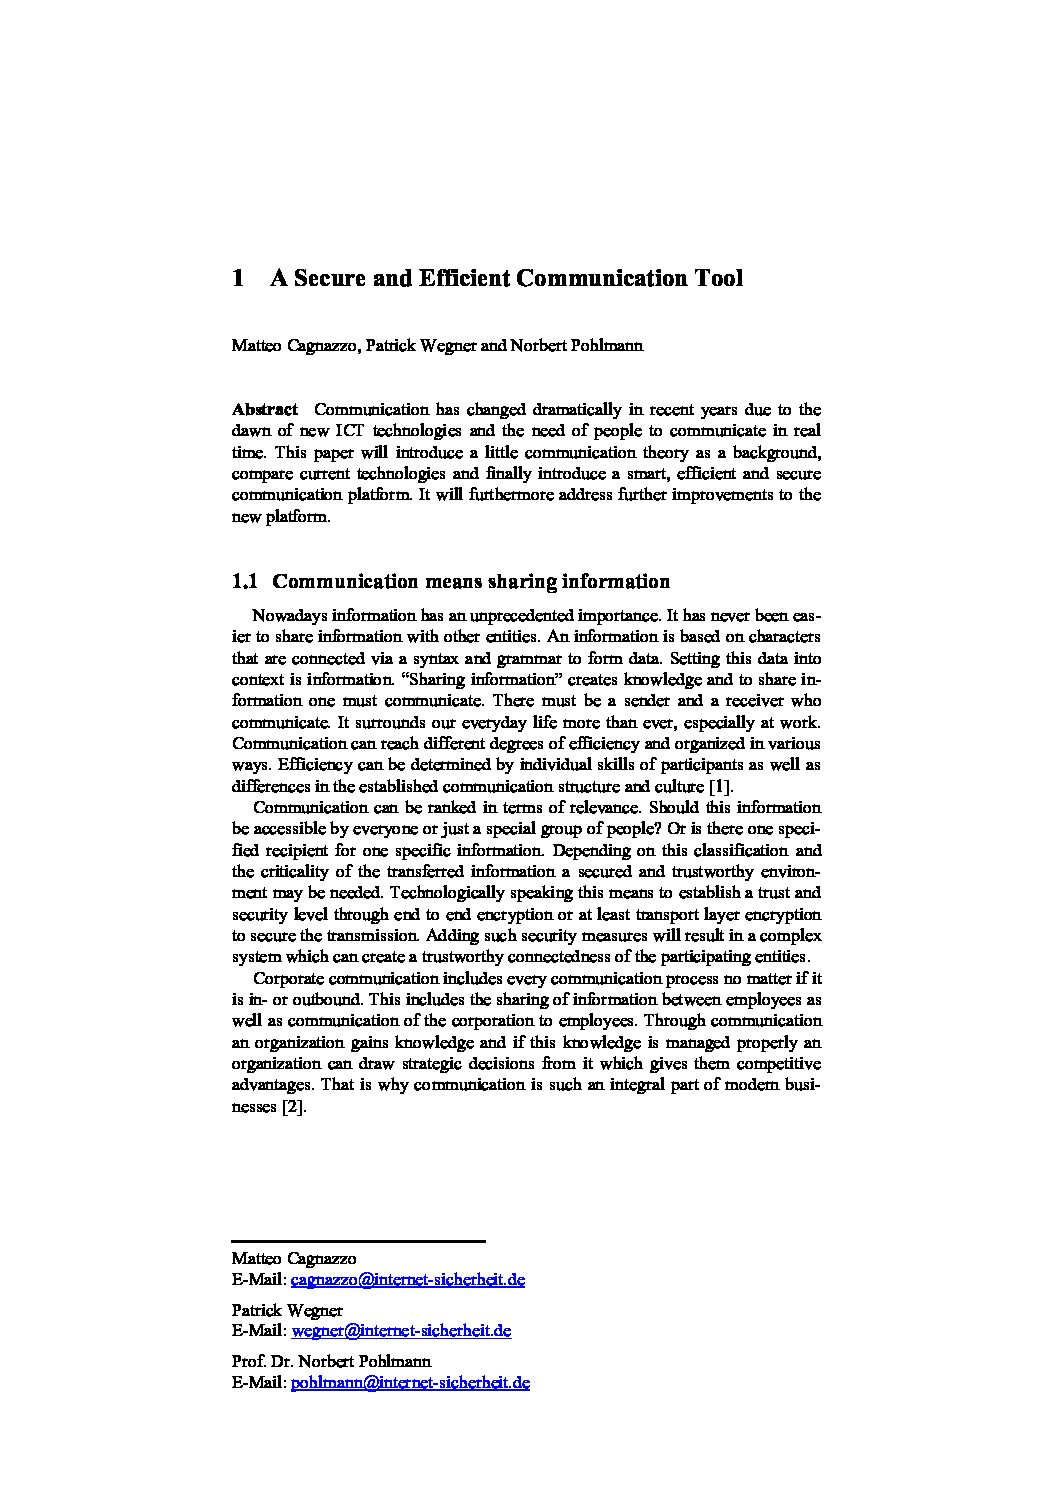 360-A-Secure-and-Efficient-Communication-Tool-Prof.-Norbert-Pohlmann-pdf